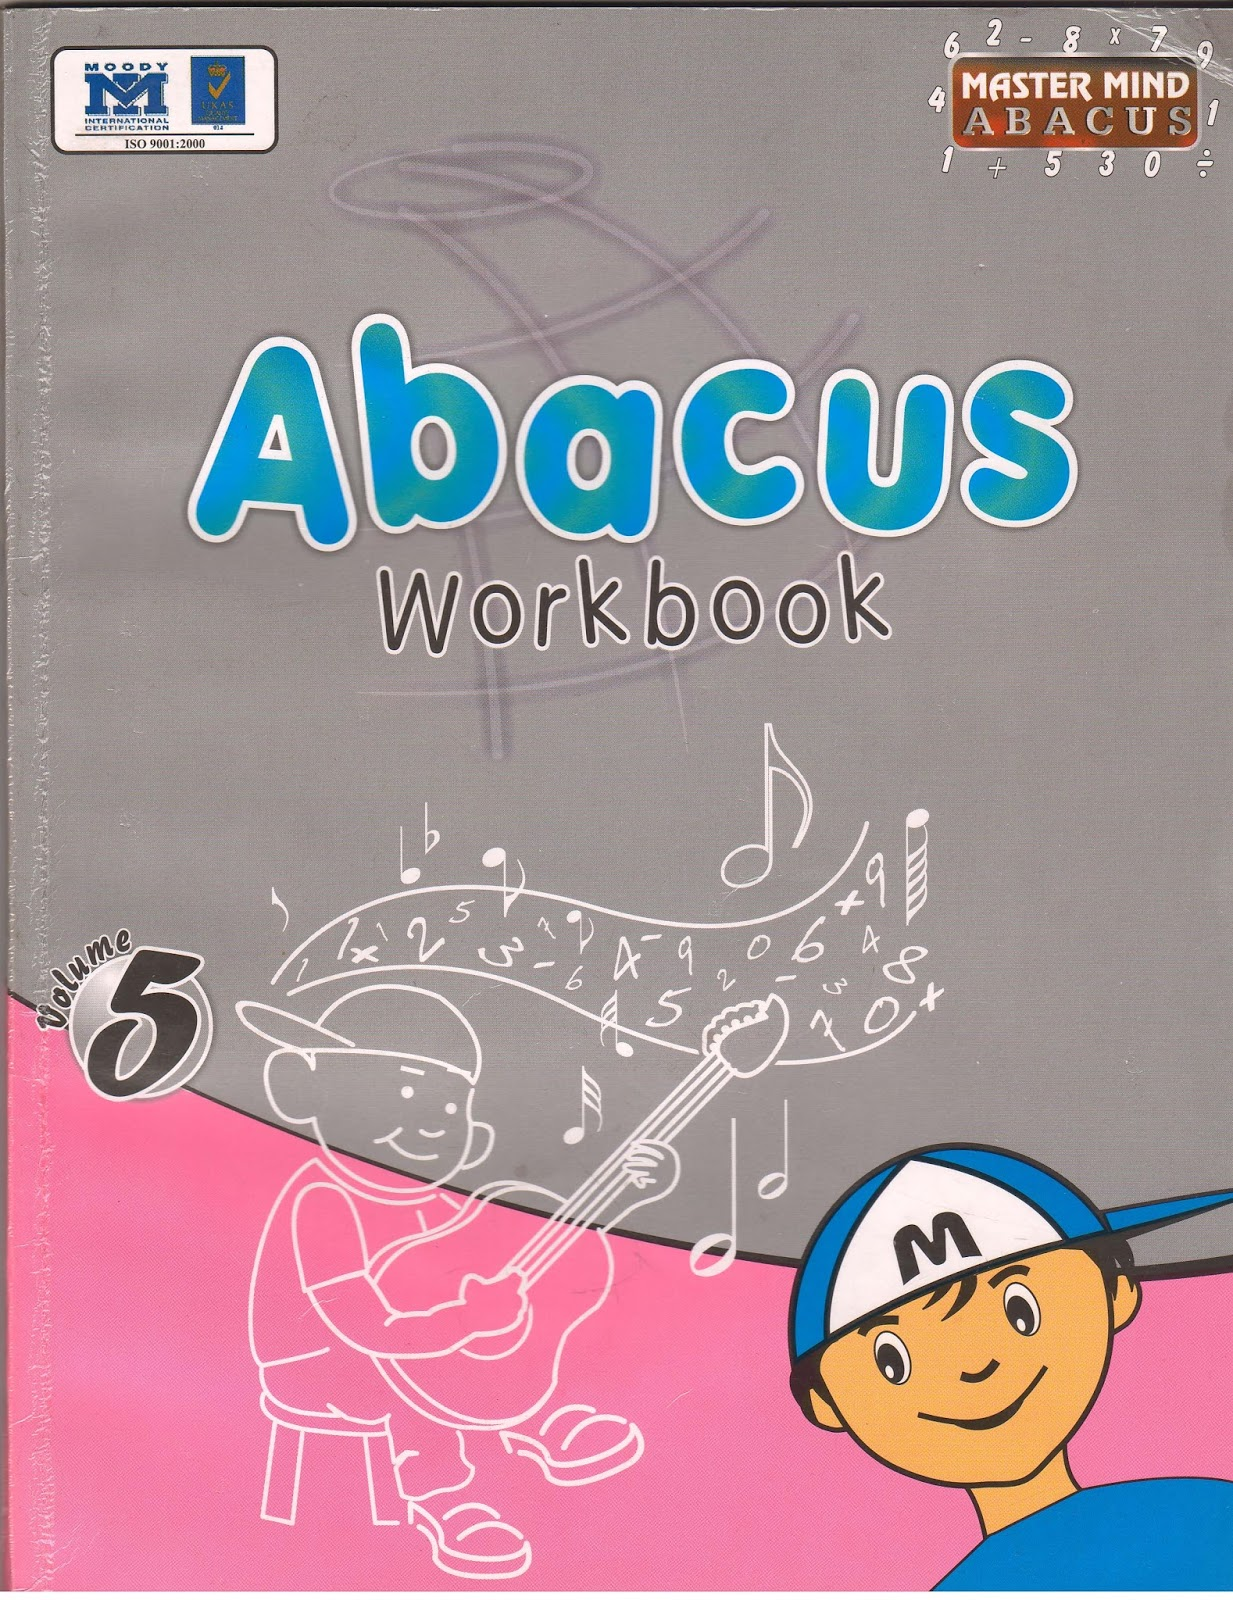 Mastermind Abacus Course Books For Abacus Students